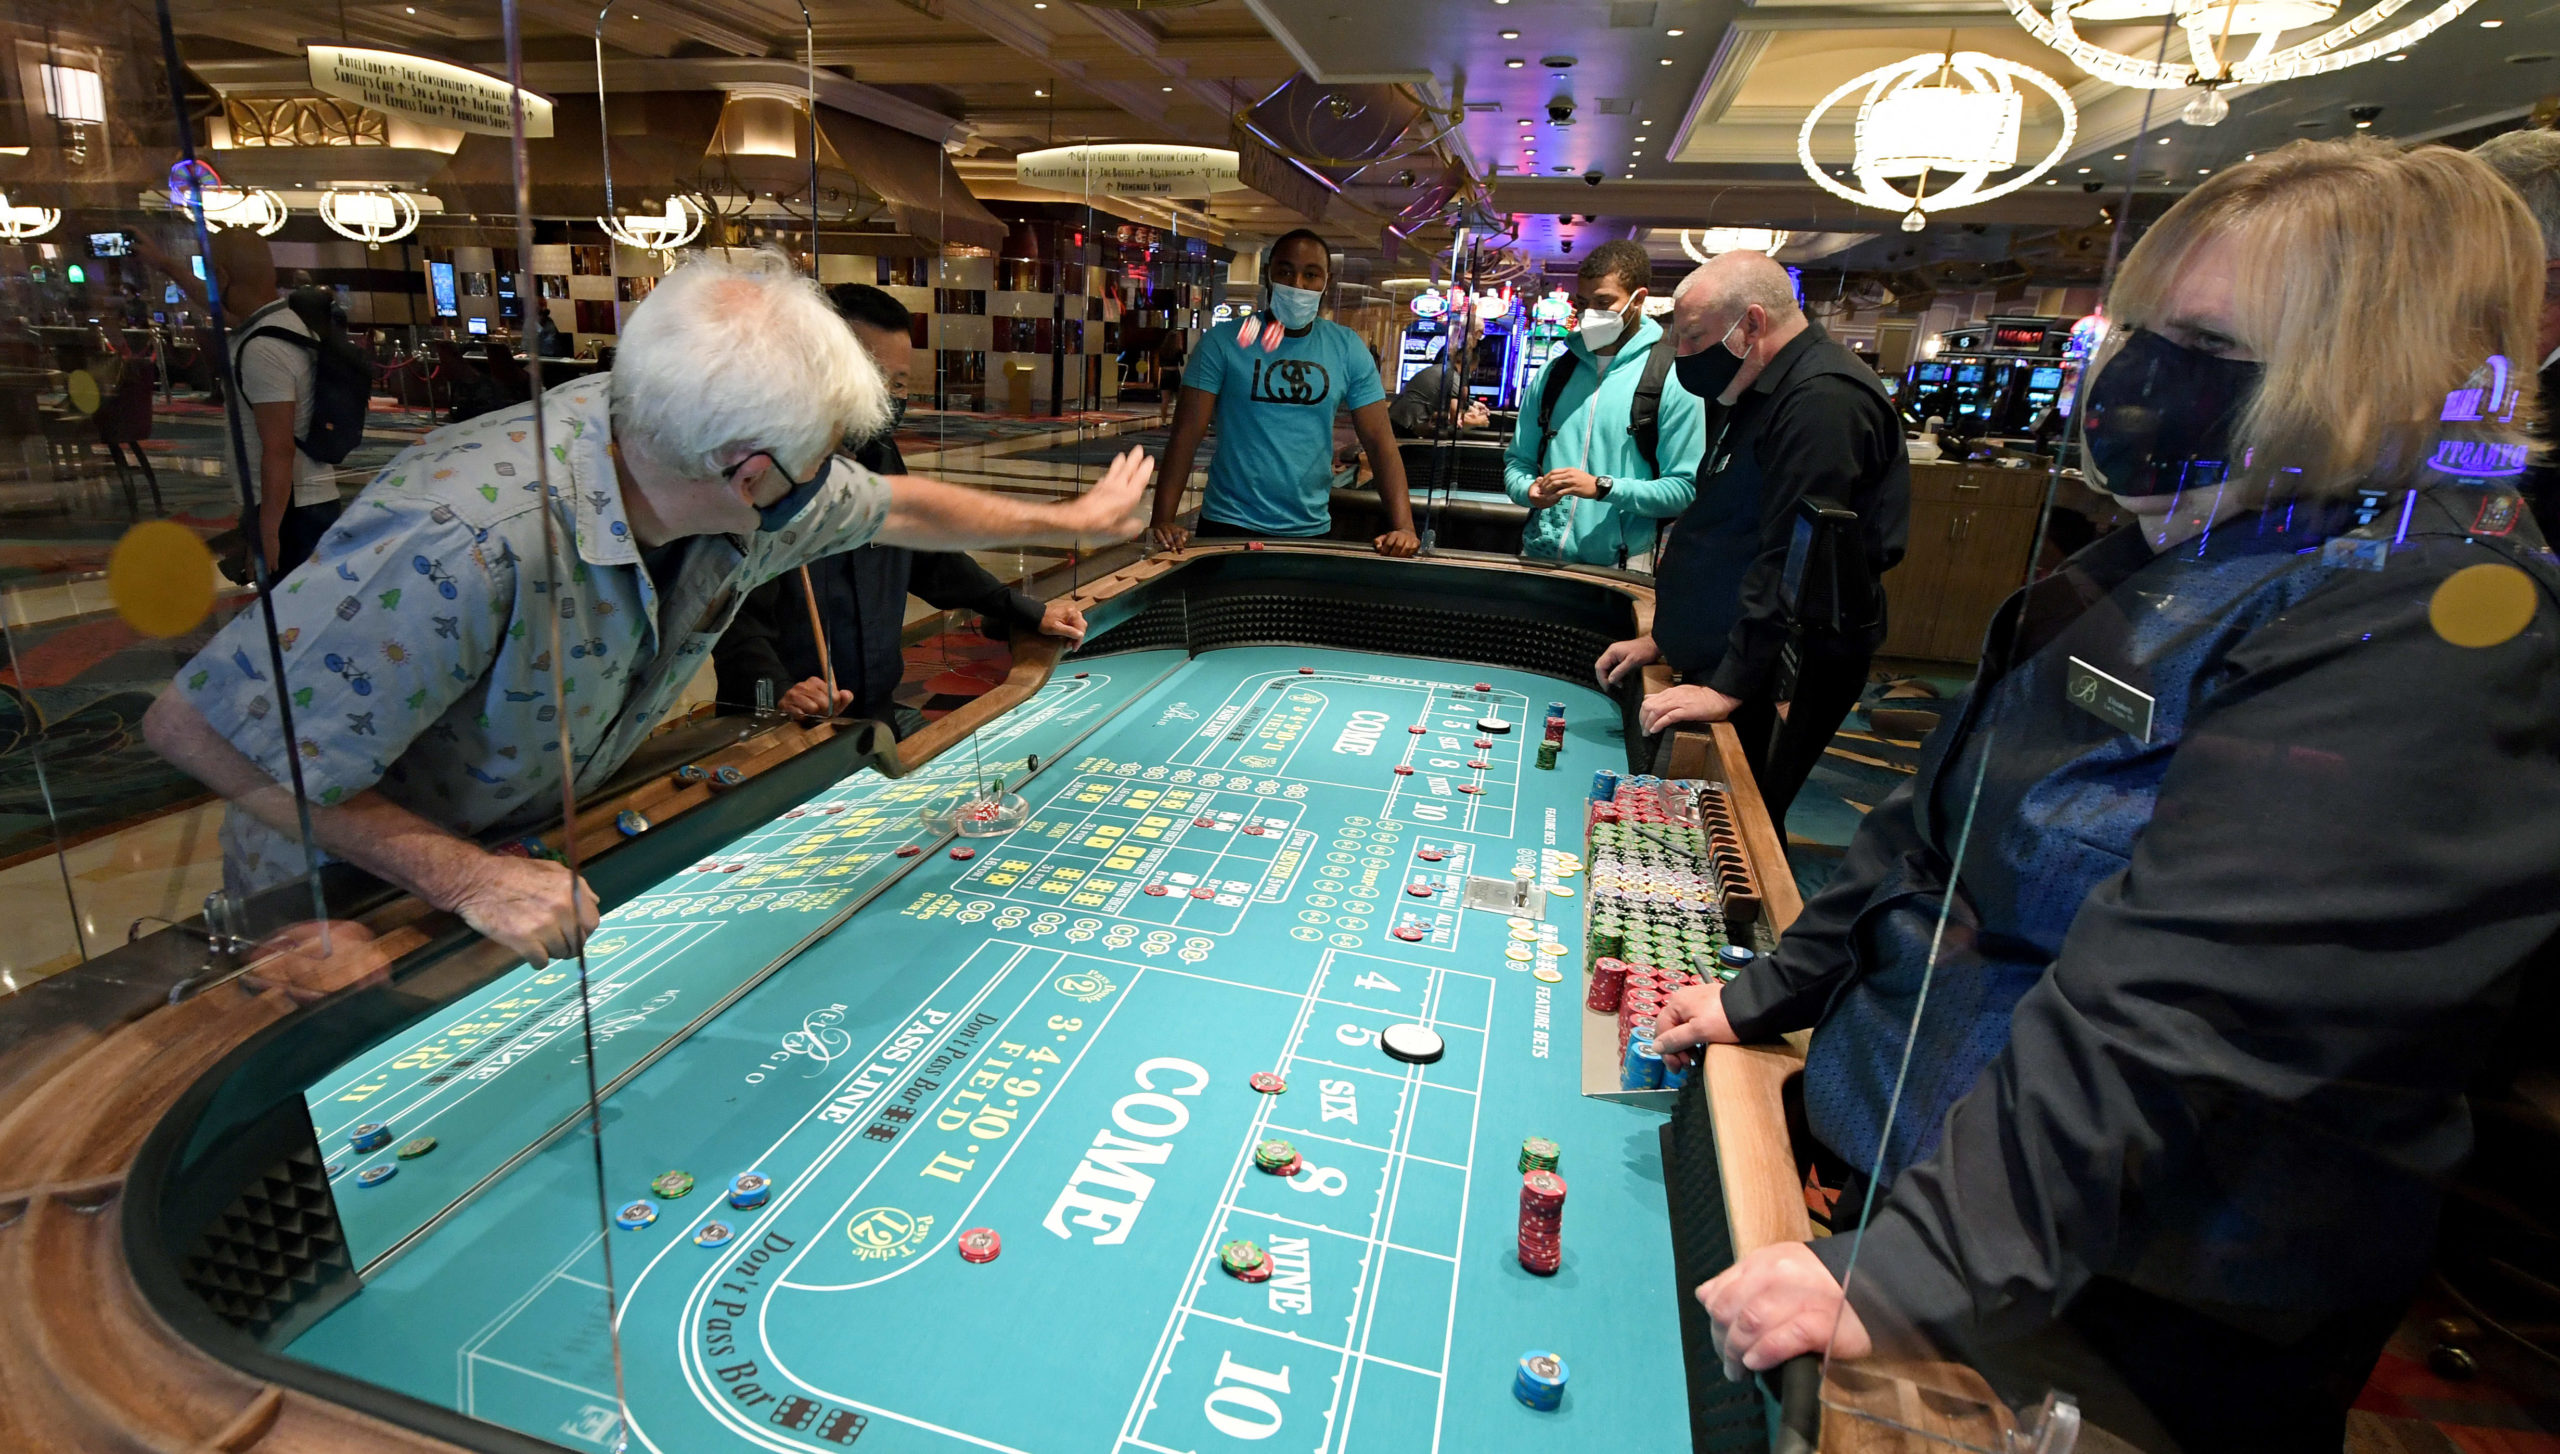 Casinos see robust gross sales regardless of social distancing, proprietor says